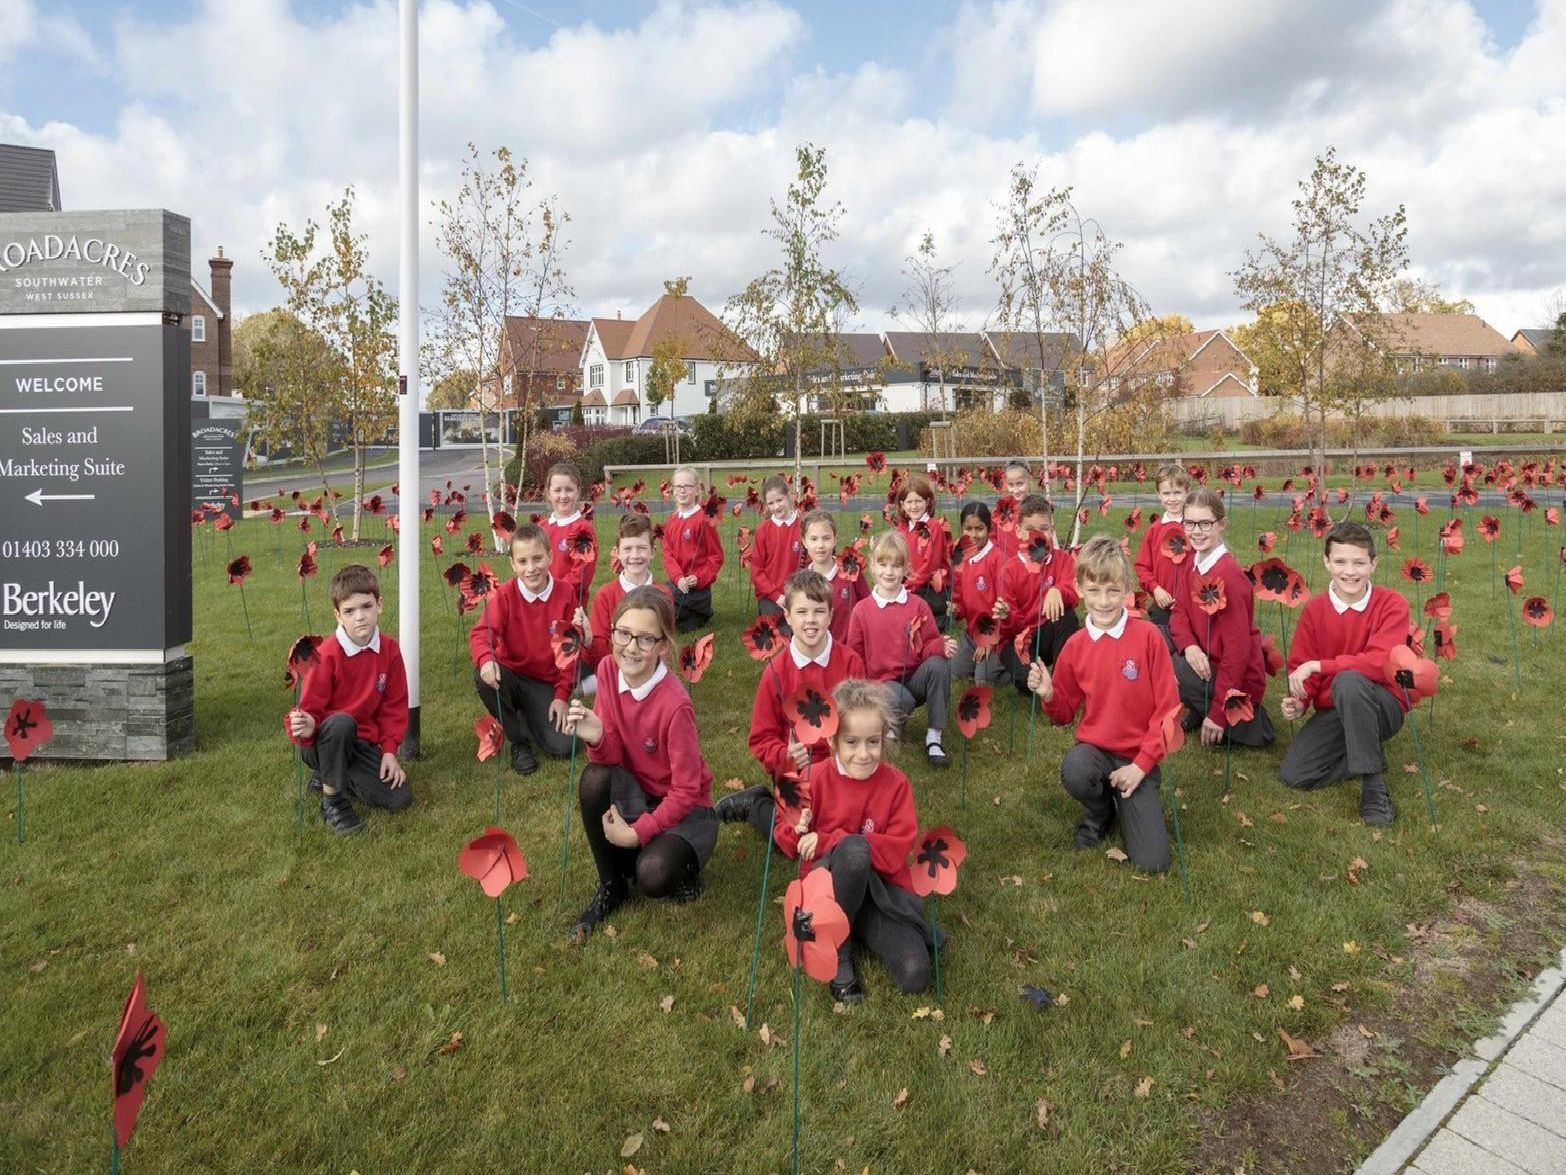 A beautiful display of 480 cardboard hand-crafted poppies with bamboo stalks, made by children from Southwater Junior Academy was unveiled at Berkeley Homes' Broadacres development in Southwater on Thursday November 8